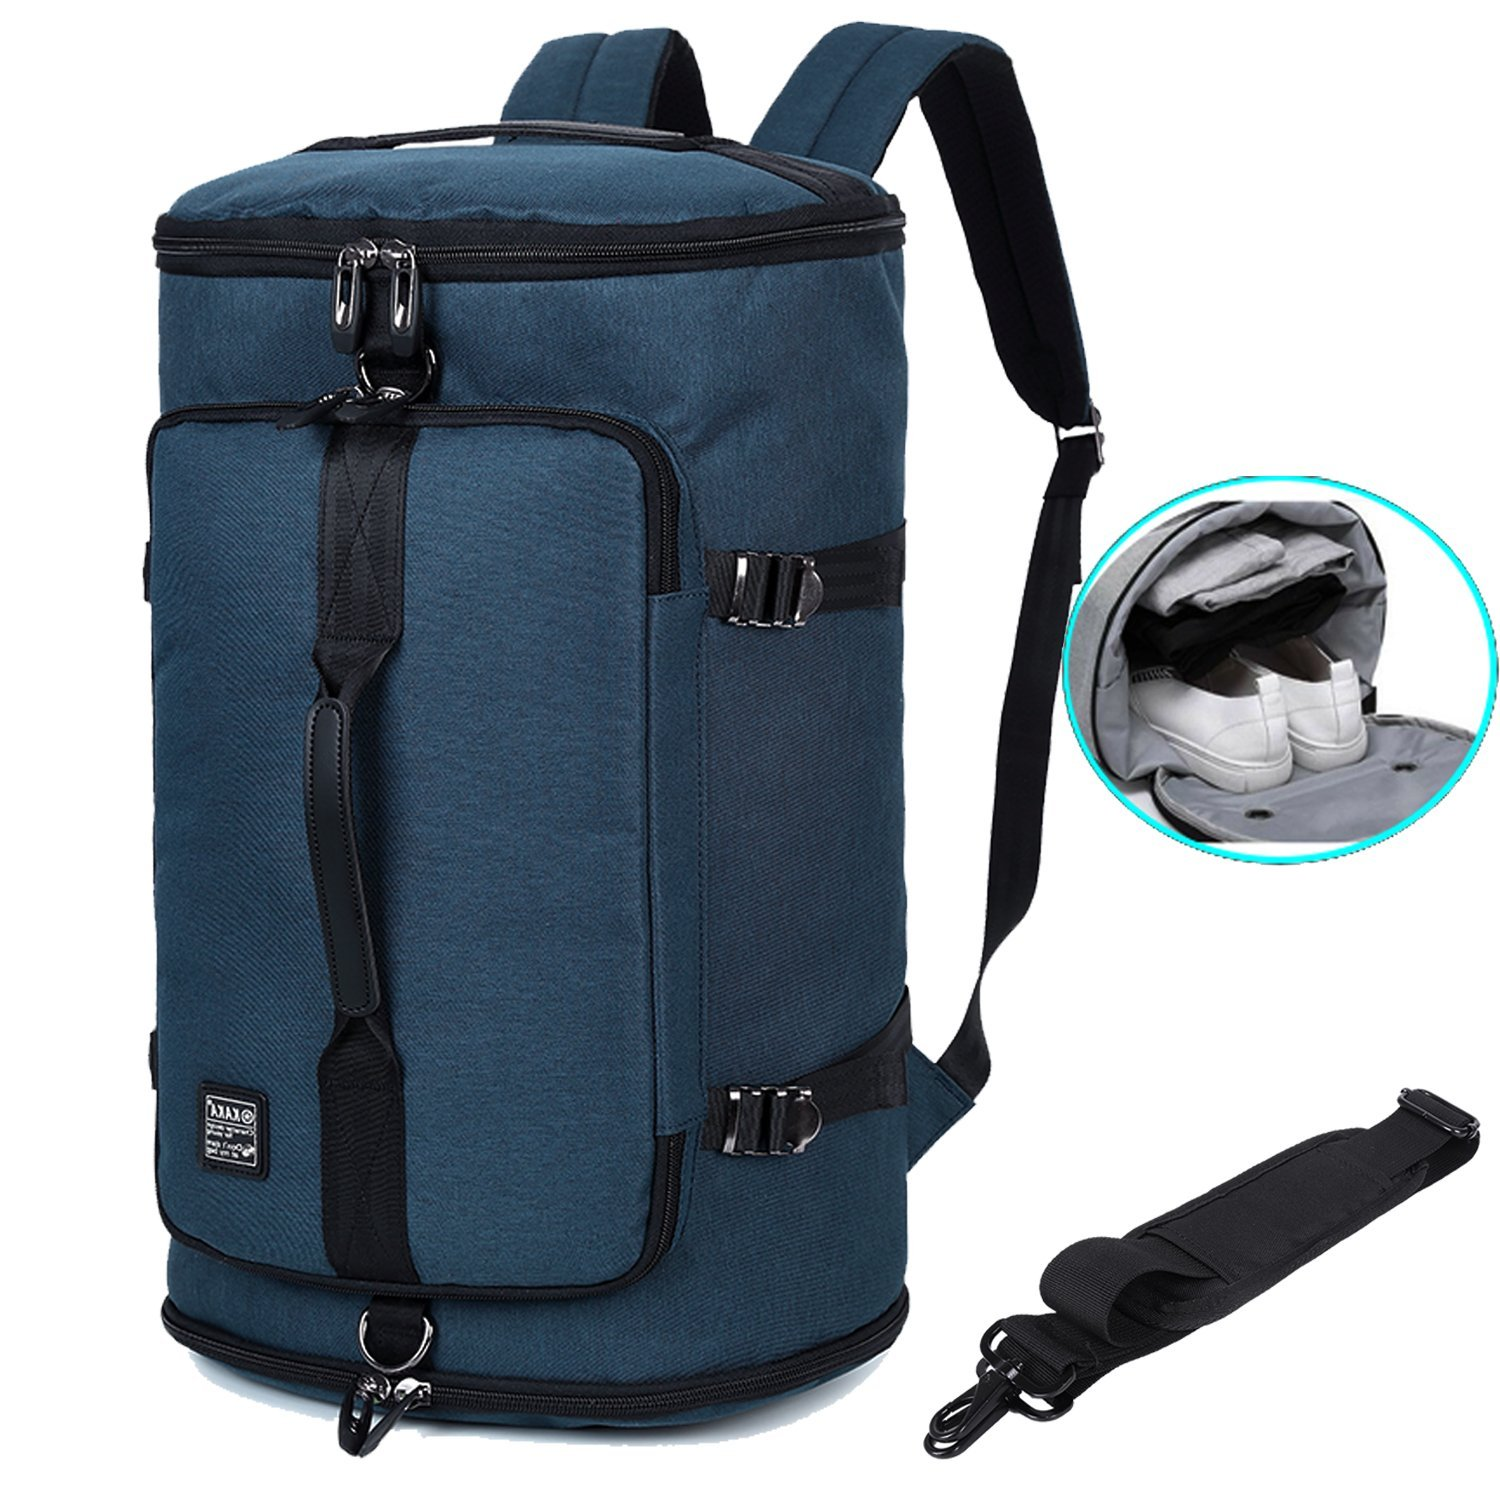 b9578f5ce Get Quotations · Travel Business Laptop Backpack 3-Way Water Resistant Duffel  Luggage Gym Sports Bag with Shoe